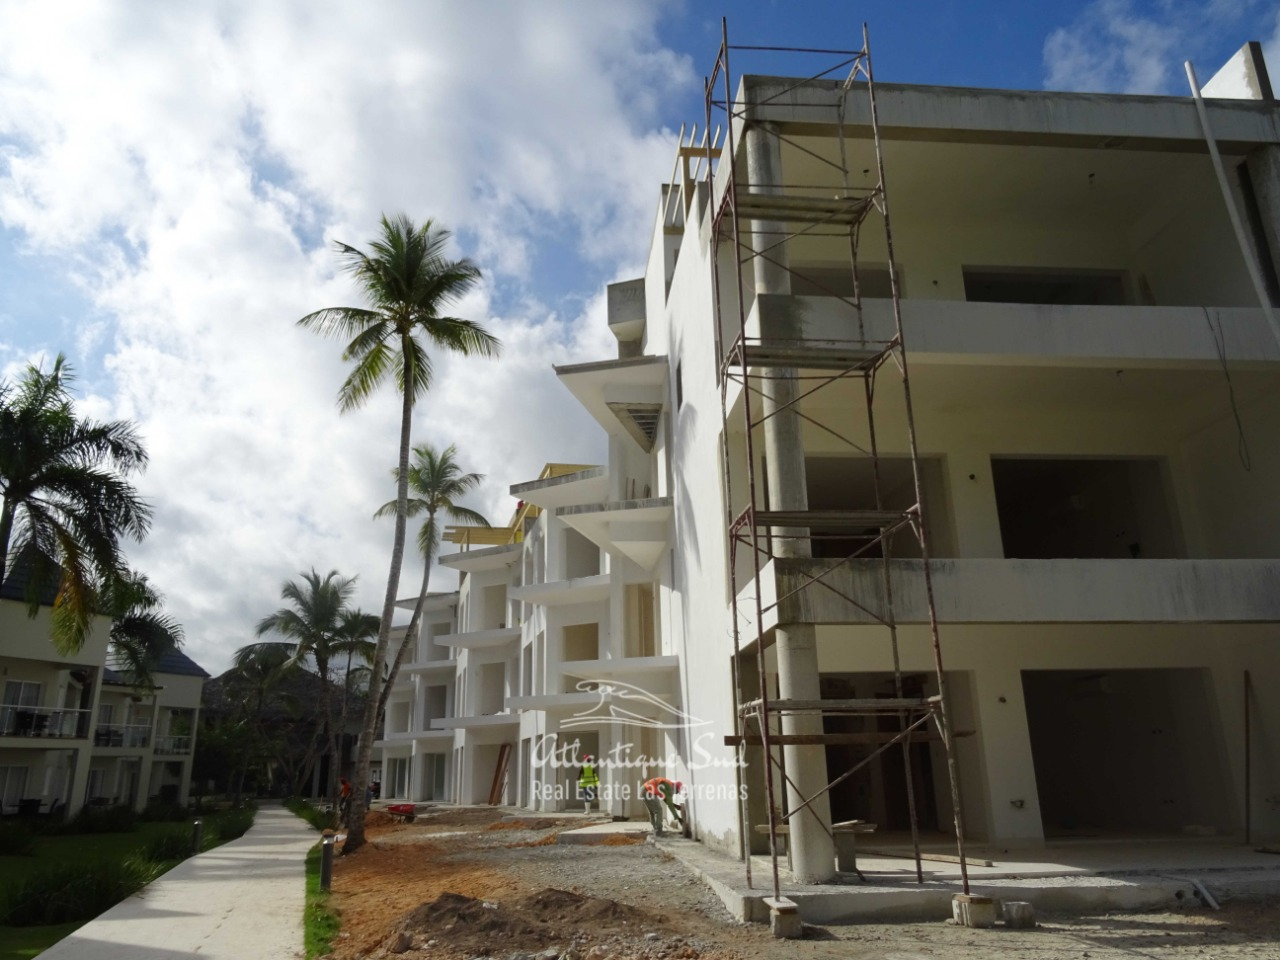 Coson bay update condos for sale las terrenas 11.jpeg